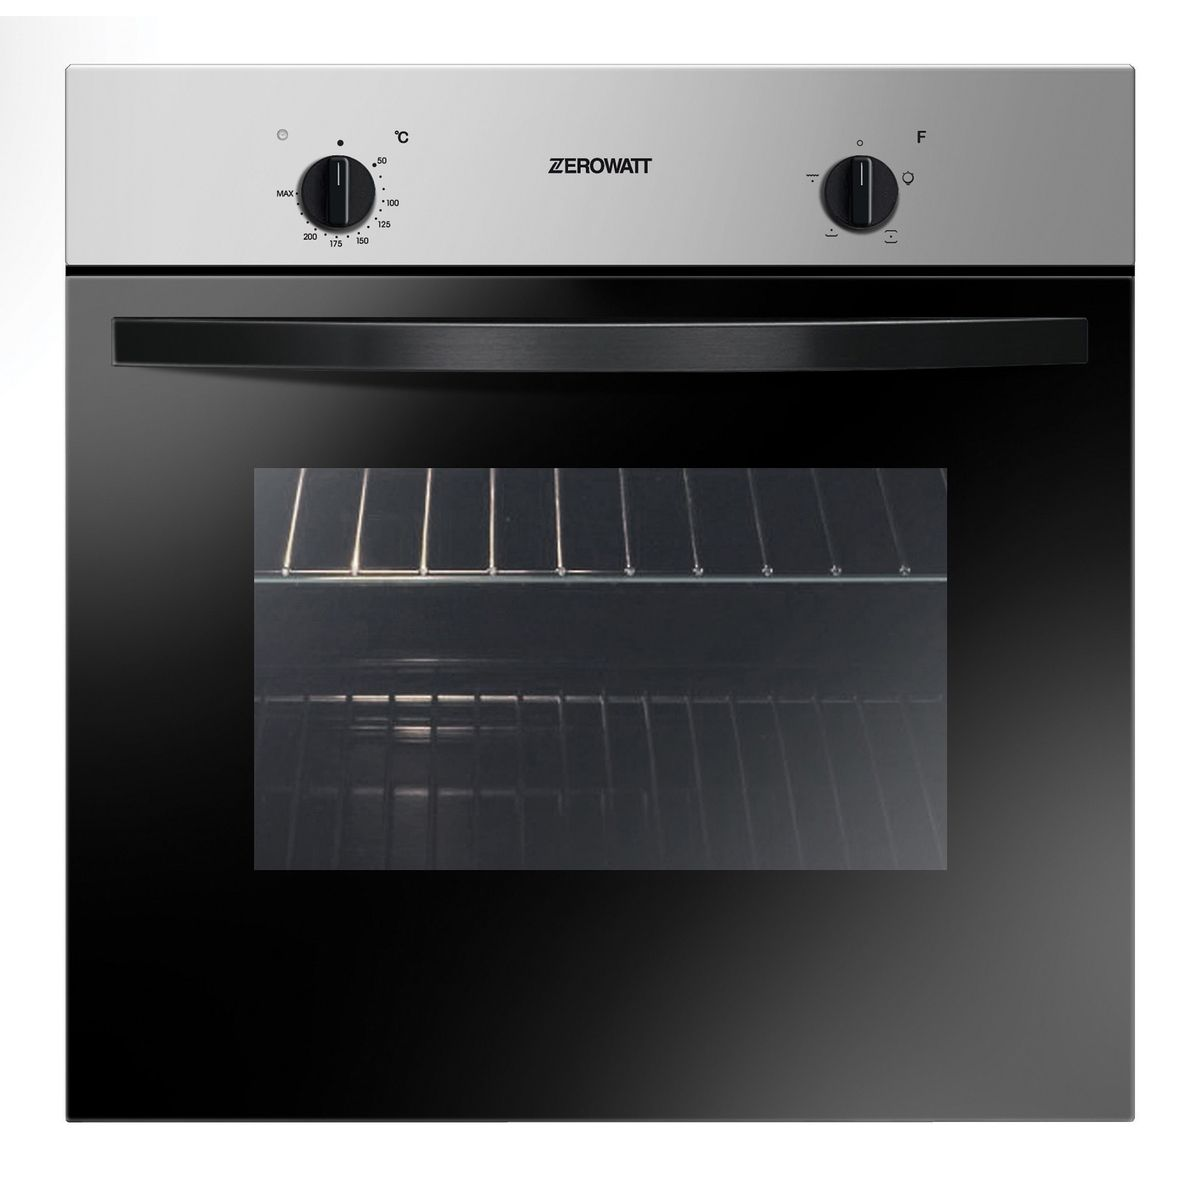 Four encastrable ZFFS200NX, 71 L, Convection naturelle, Gril, Nettoyage manuel